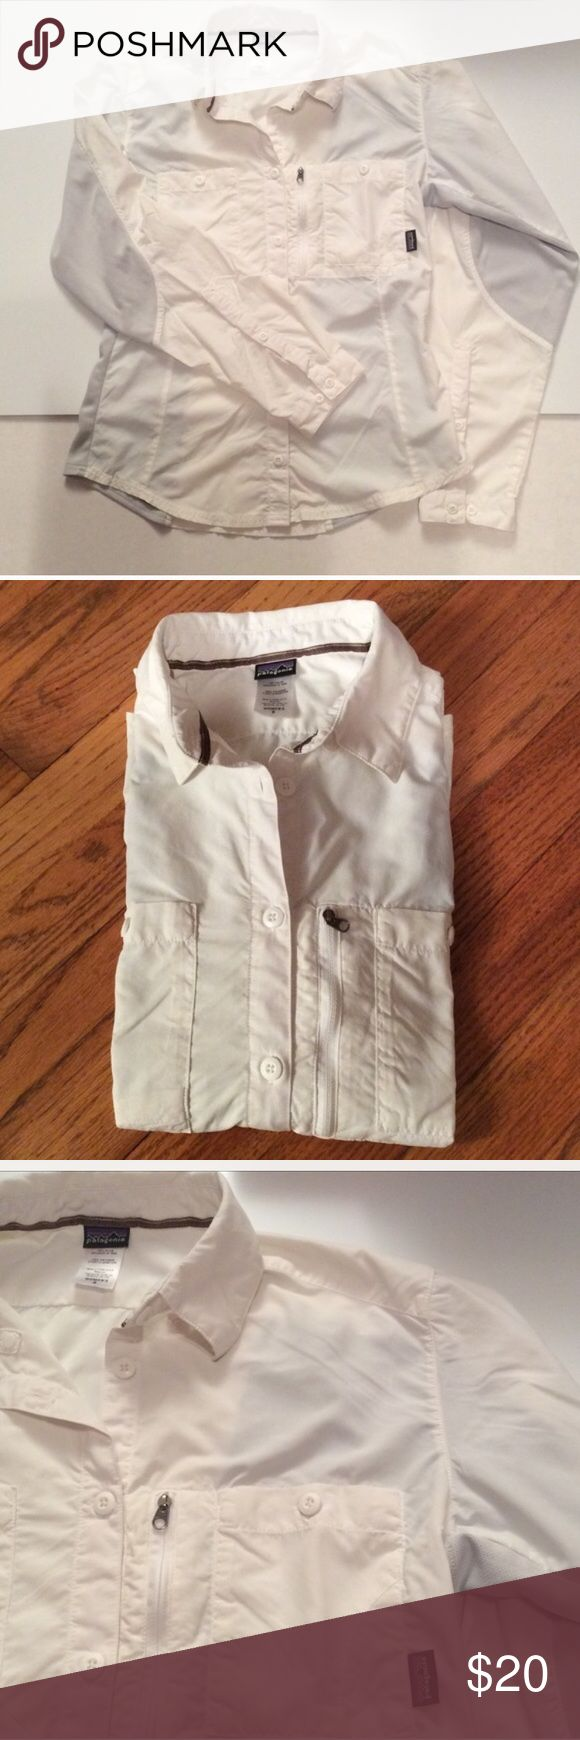 Patagonia shirt long sleeved Off white women's Patagonia top. Good condition. Size 8. Nice for summer. Button down. Patagonia Tops Button Down Shirts